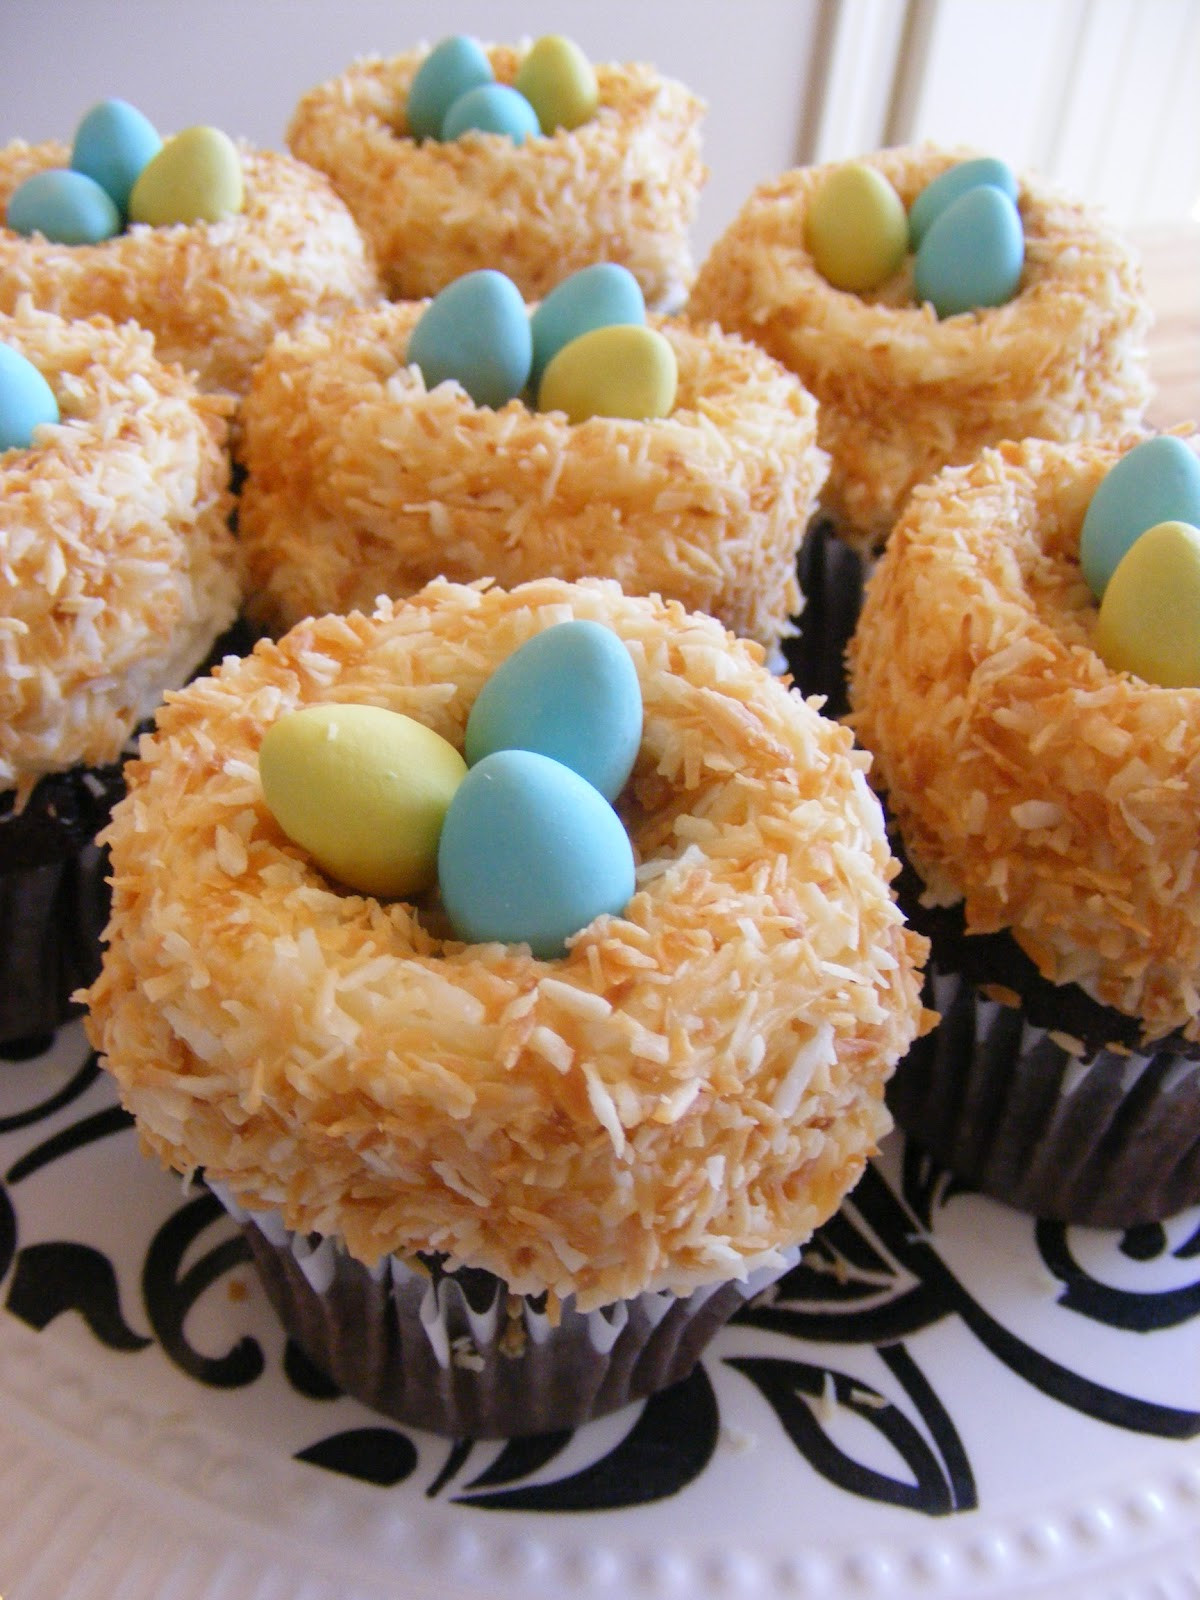 Cute Easter Cupcakes  Two Super Easy Super Cute Cupcakes for Easter